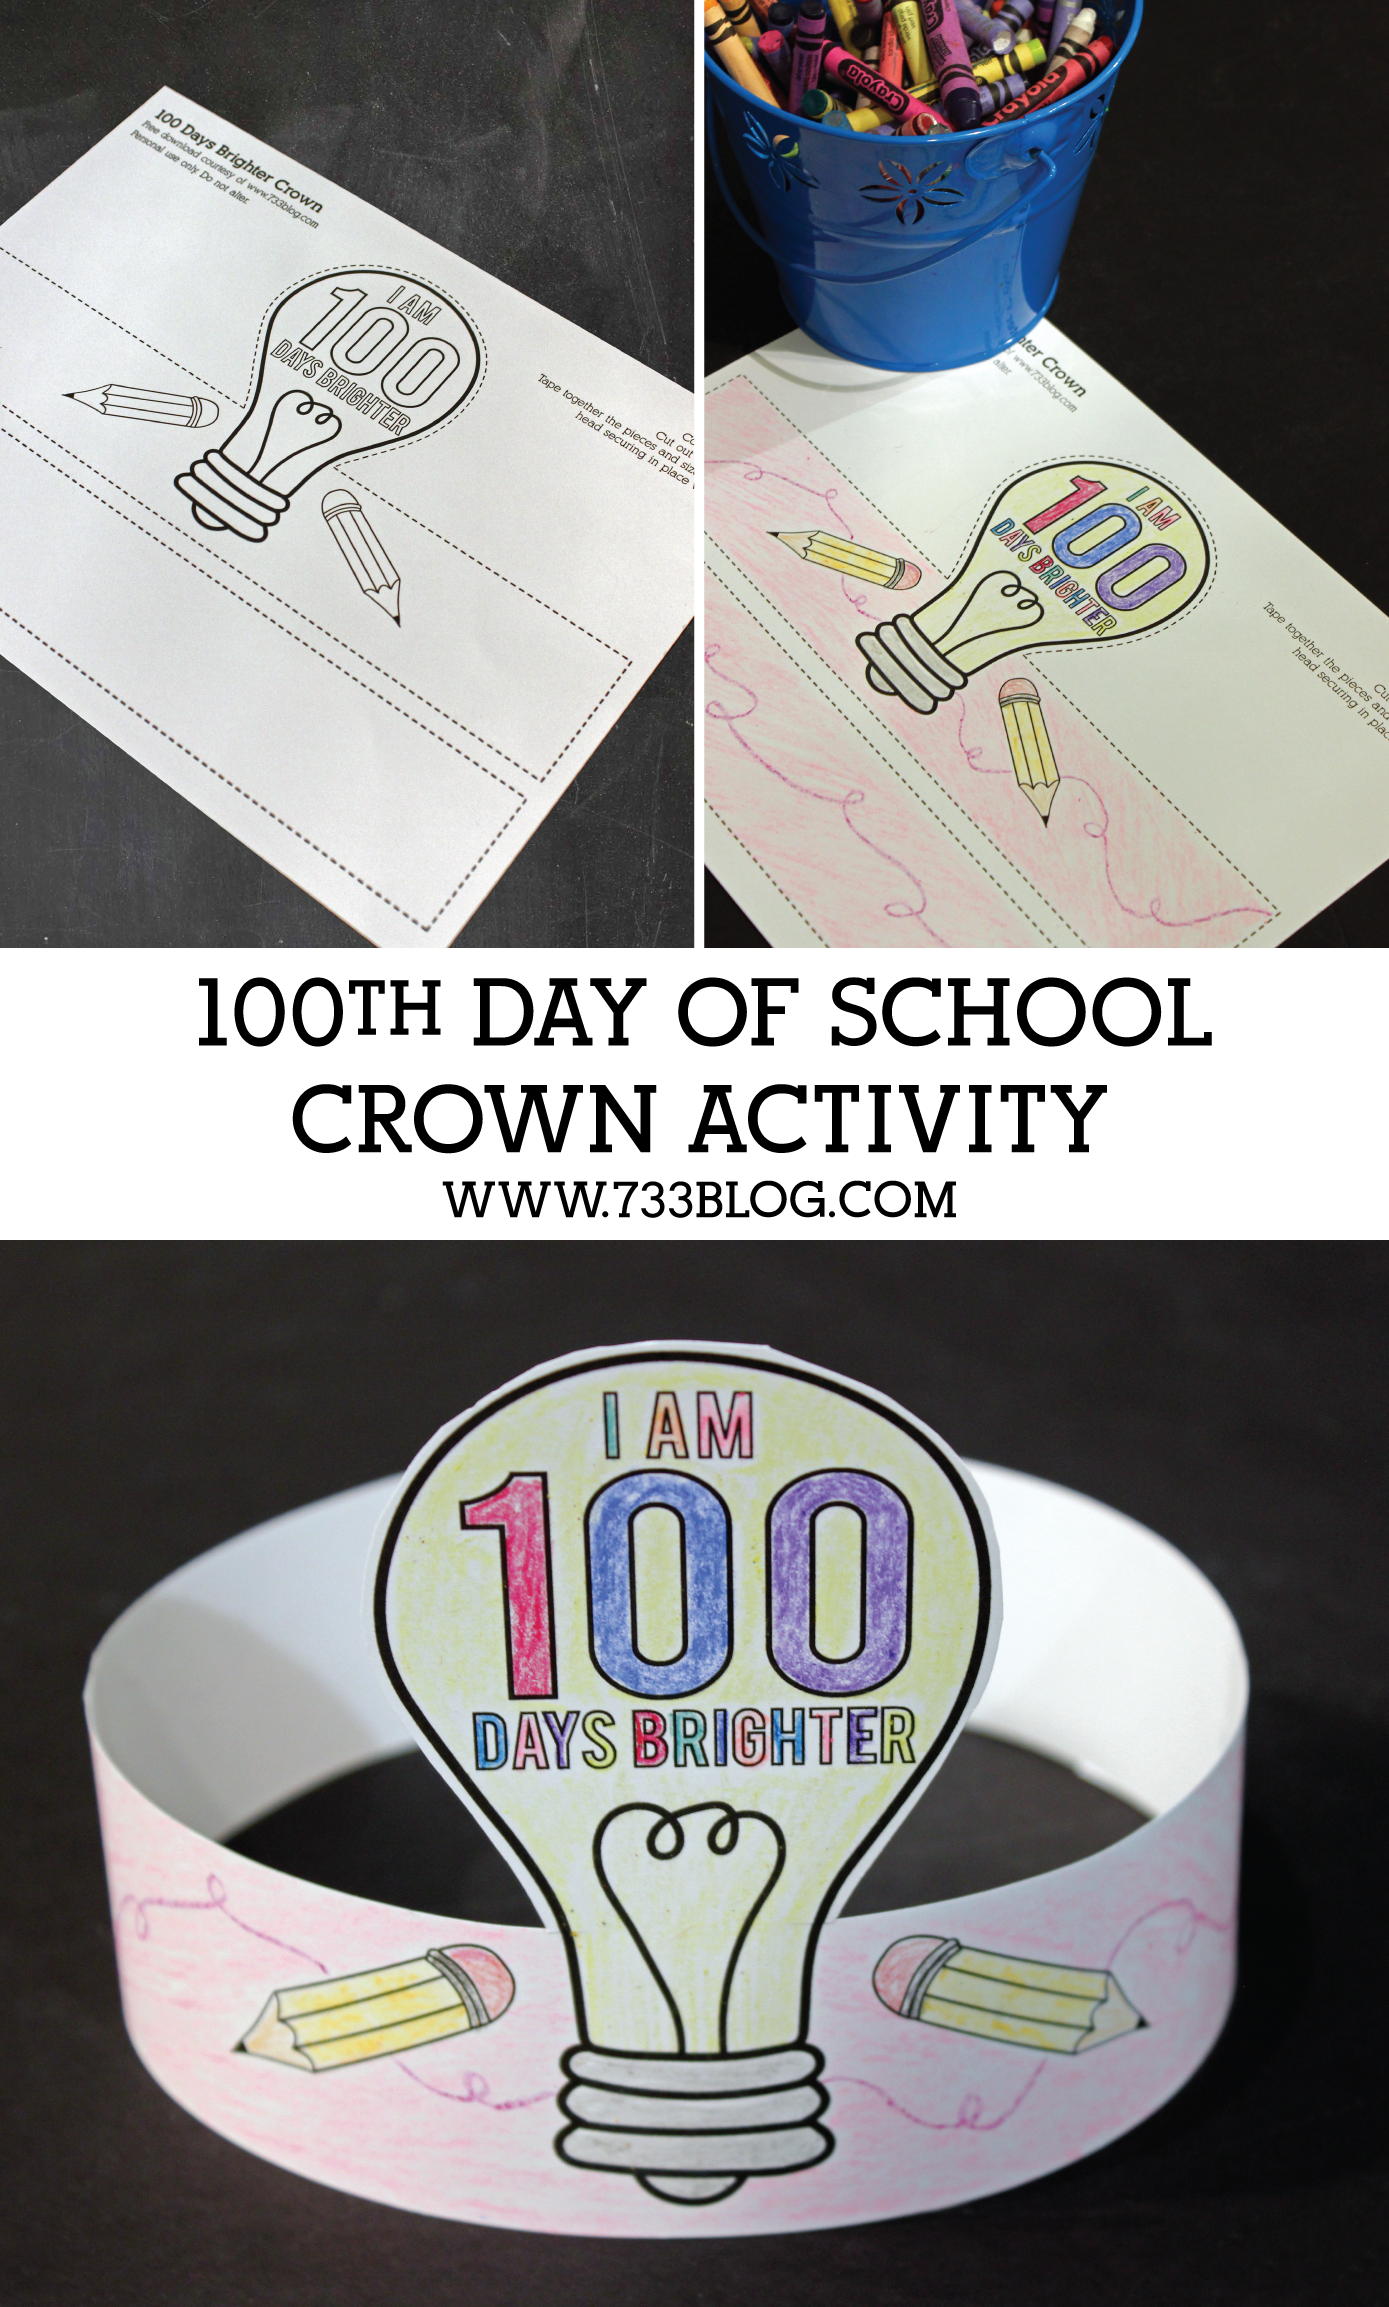 100 Days Brighter Crown Activity